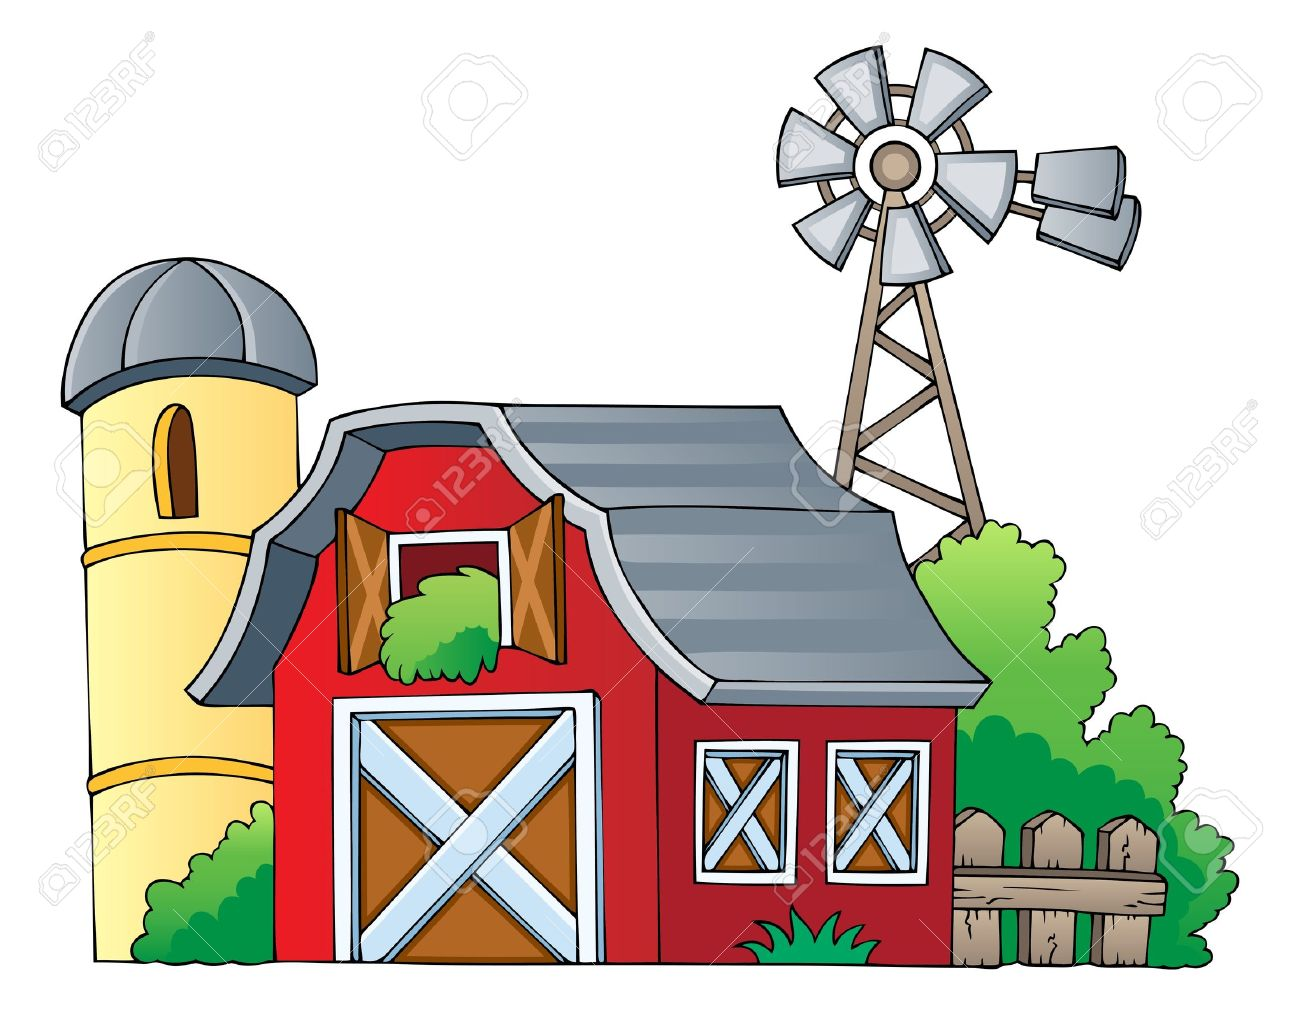 Farmhouse clipart farm land. Collection of free download